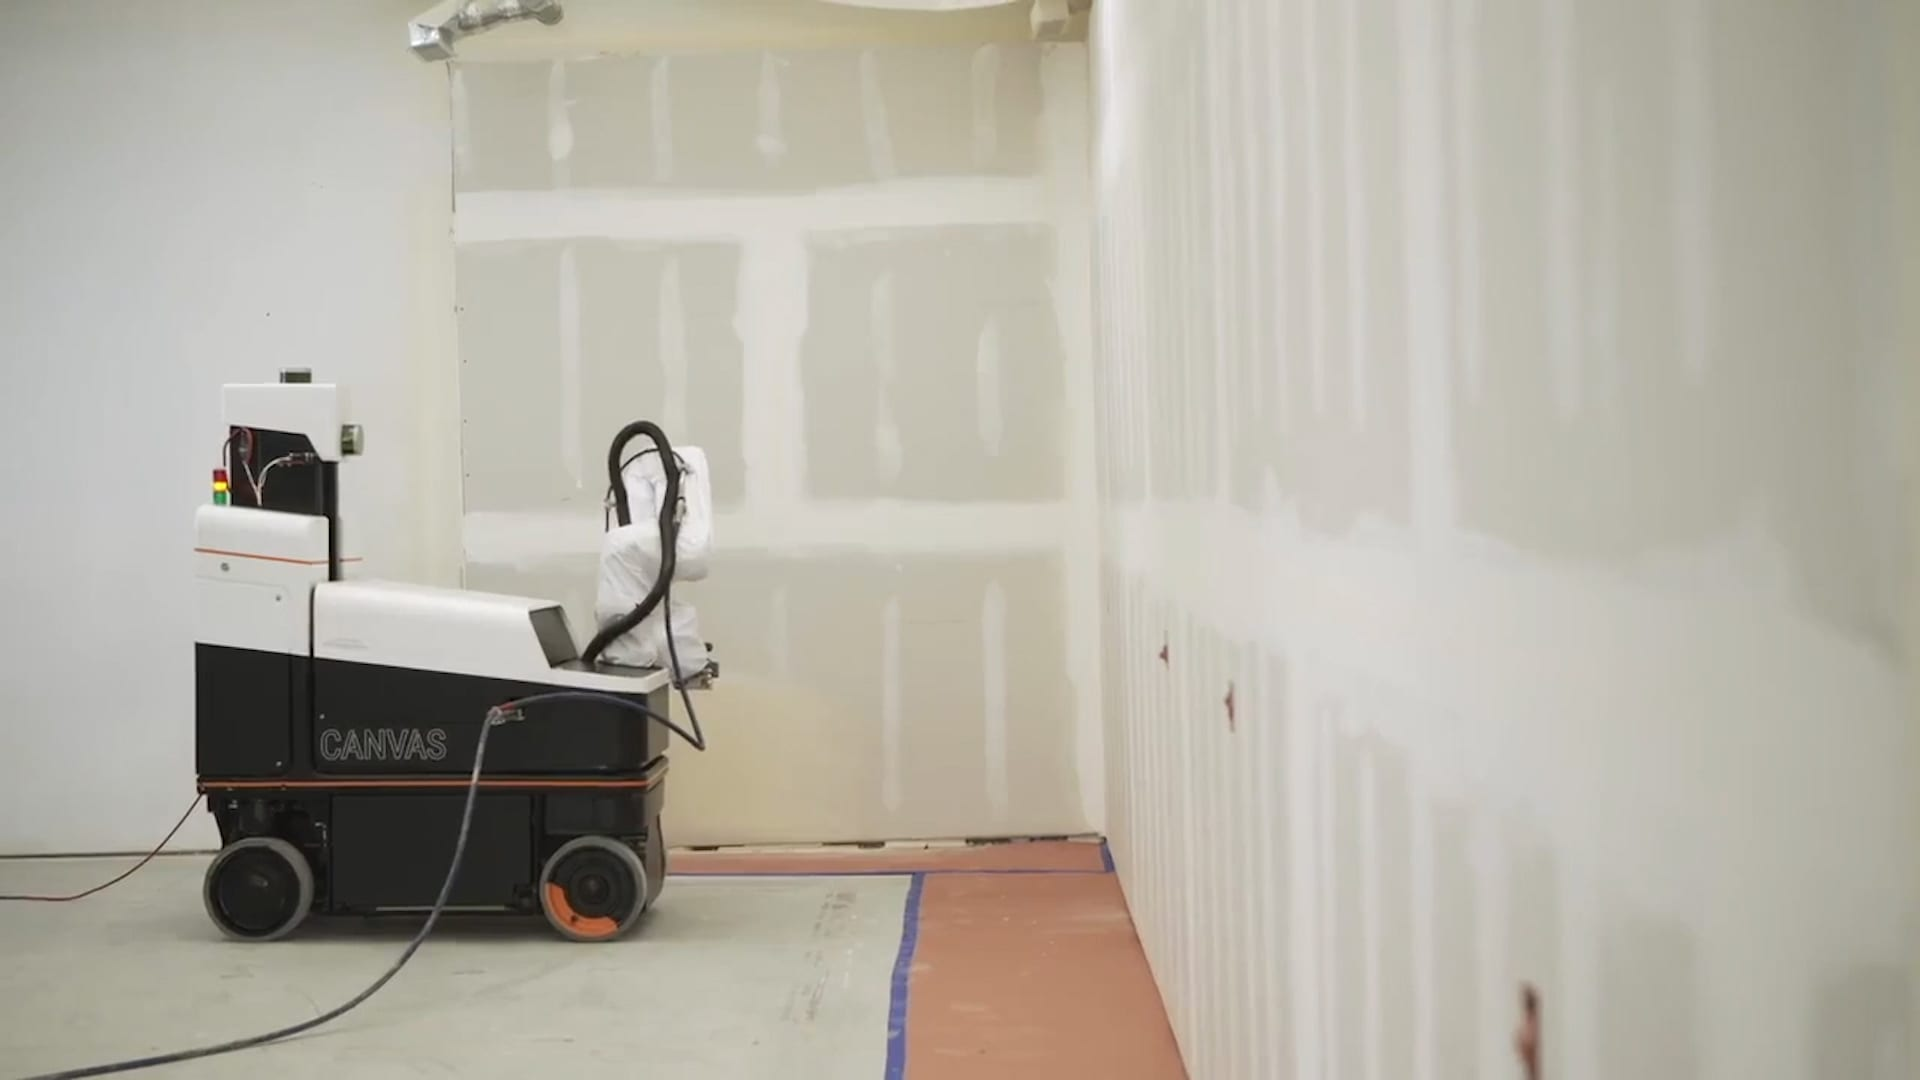 The Canvas robotic drywall system.